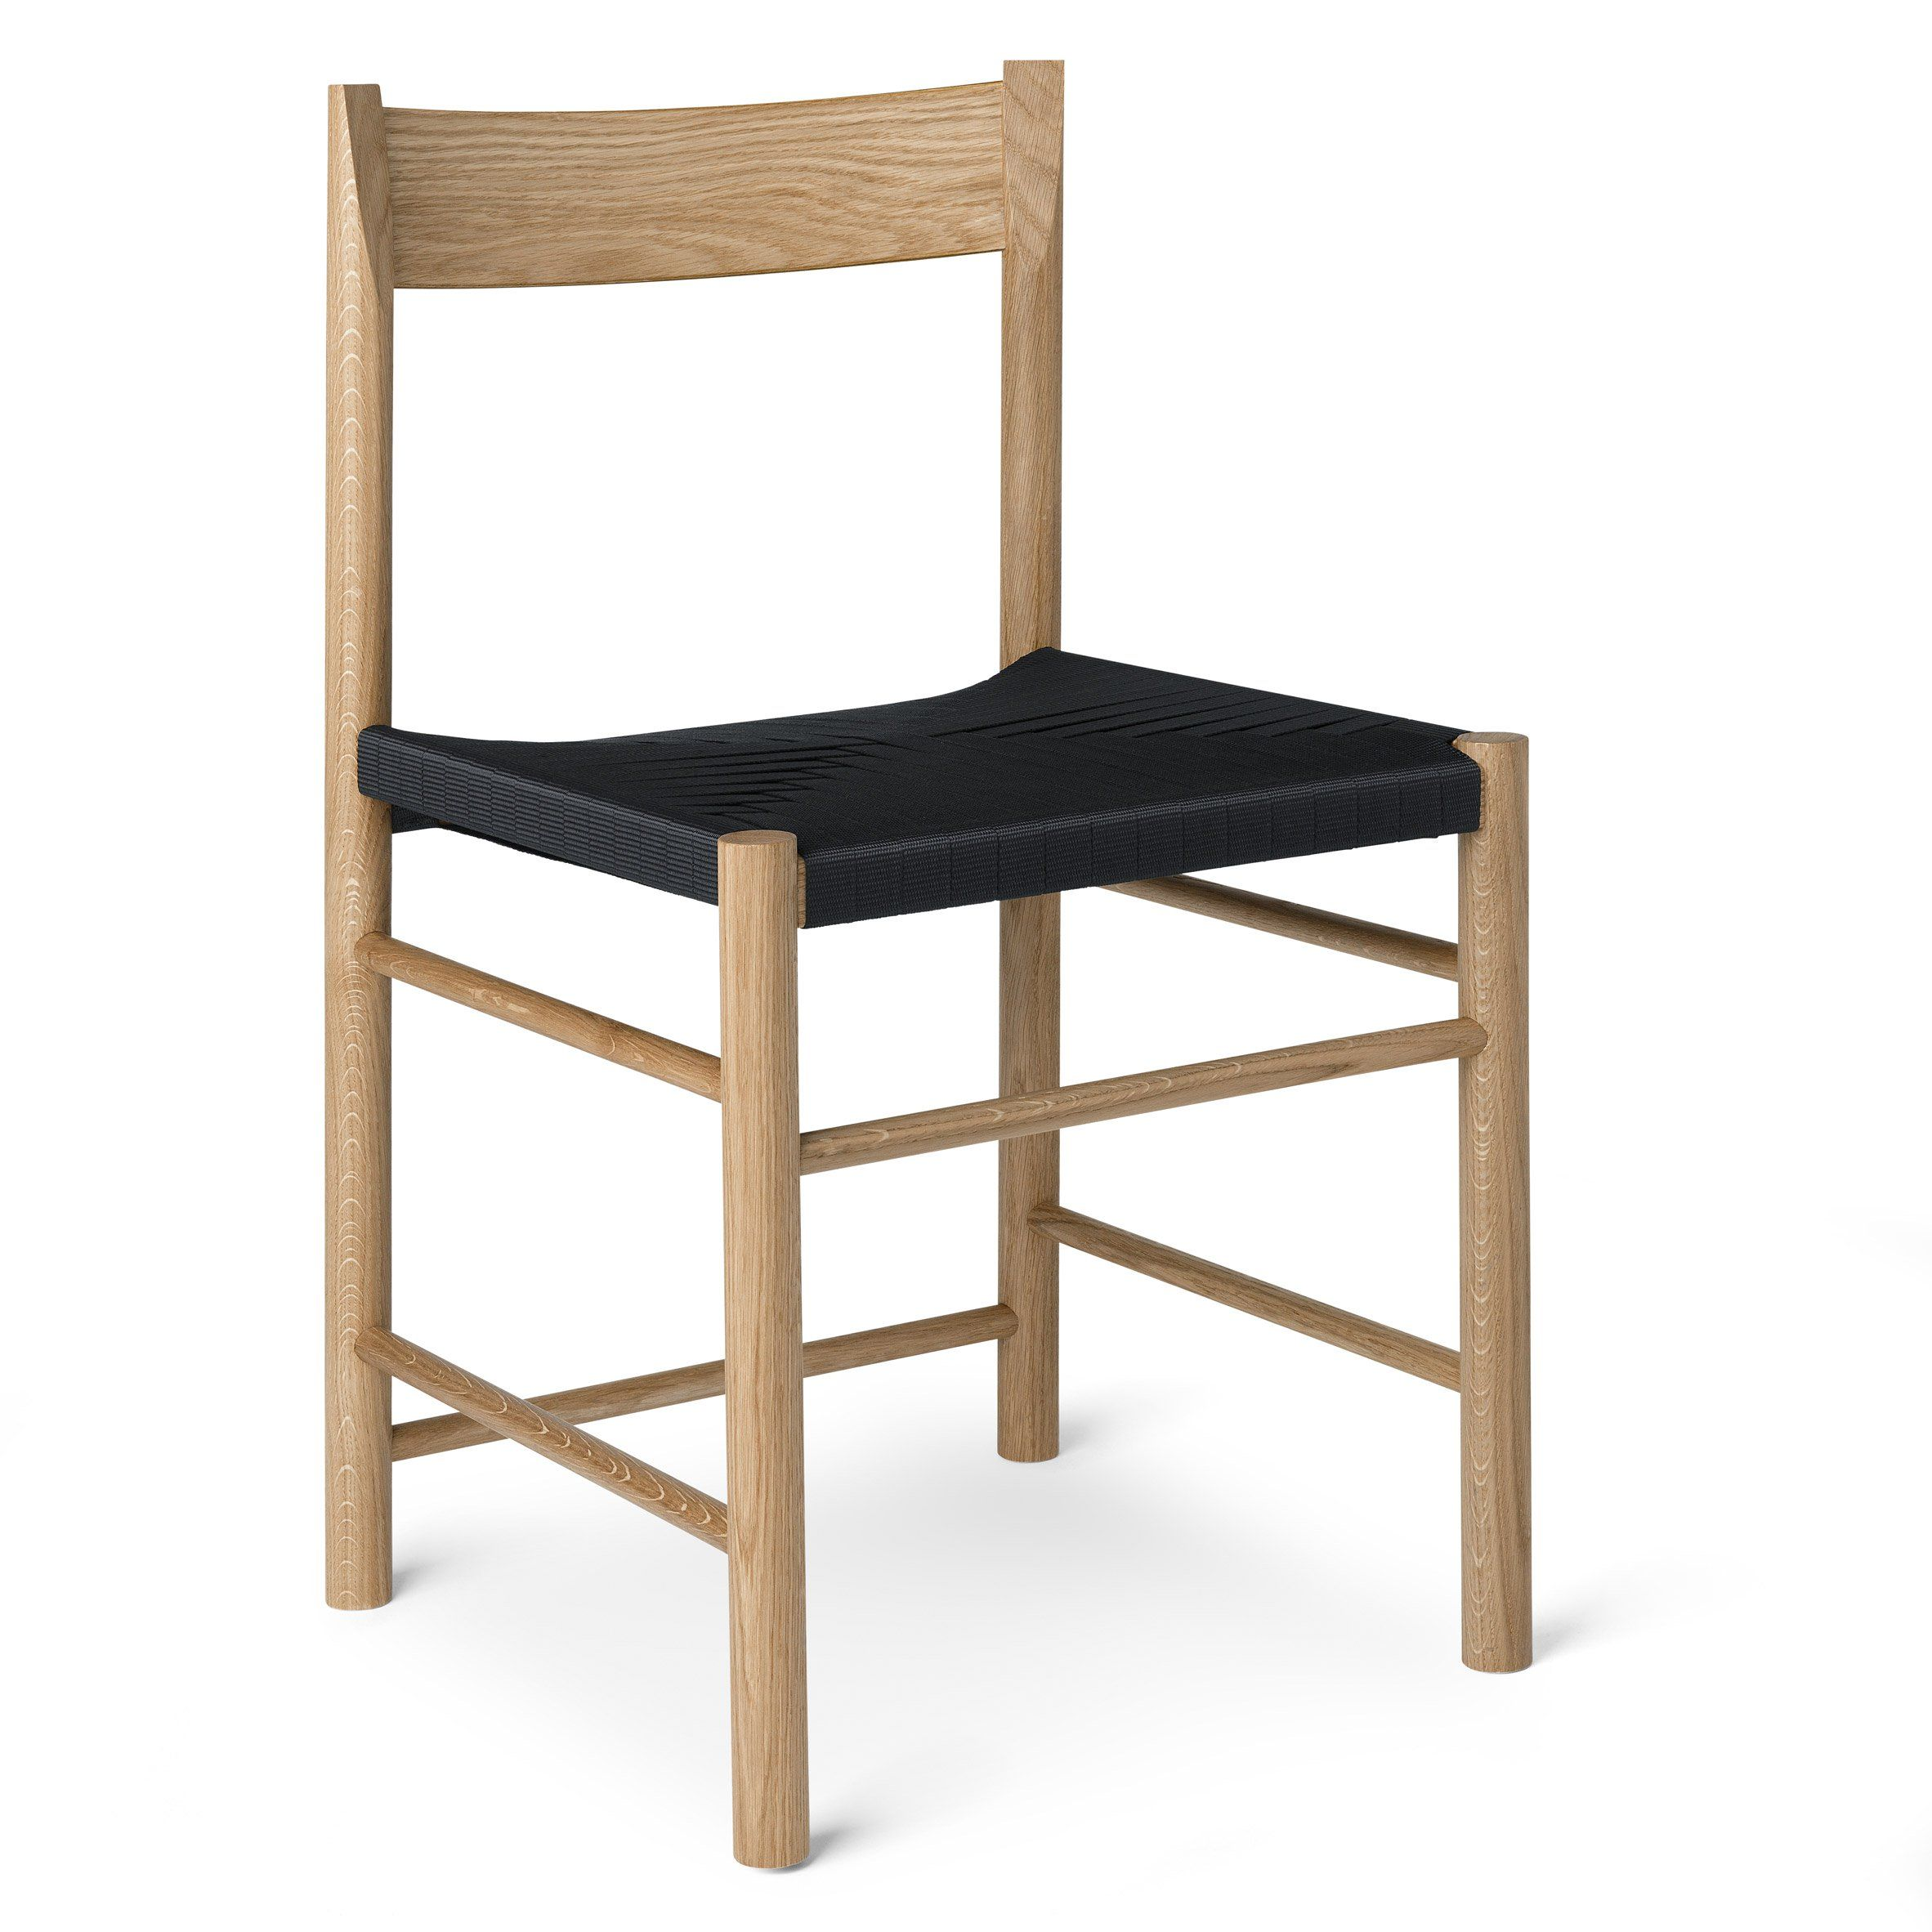 krueger folding chairs banquet hall rasmus b fex borrows quothonesty and quality quot of shaker